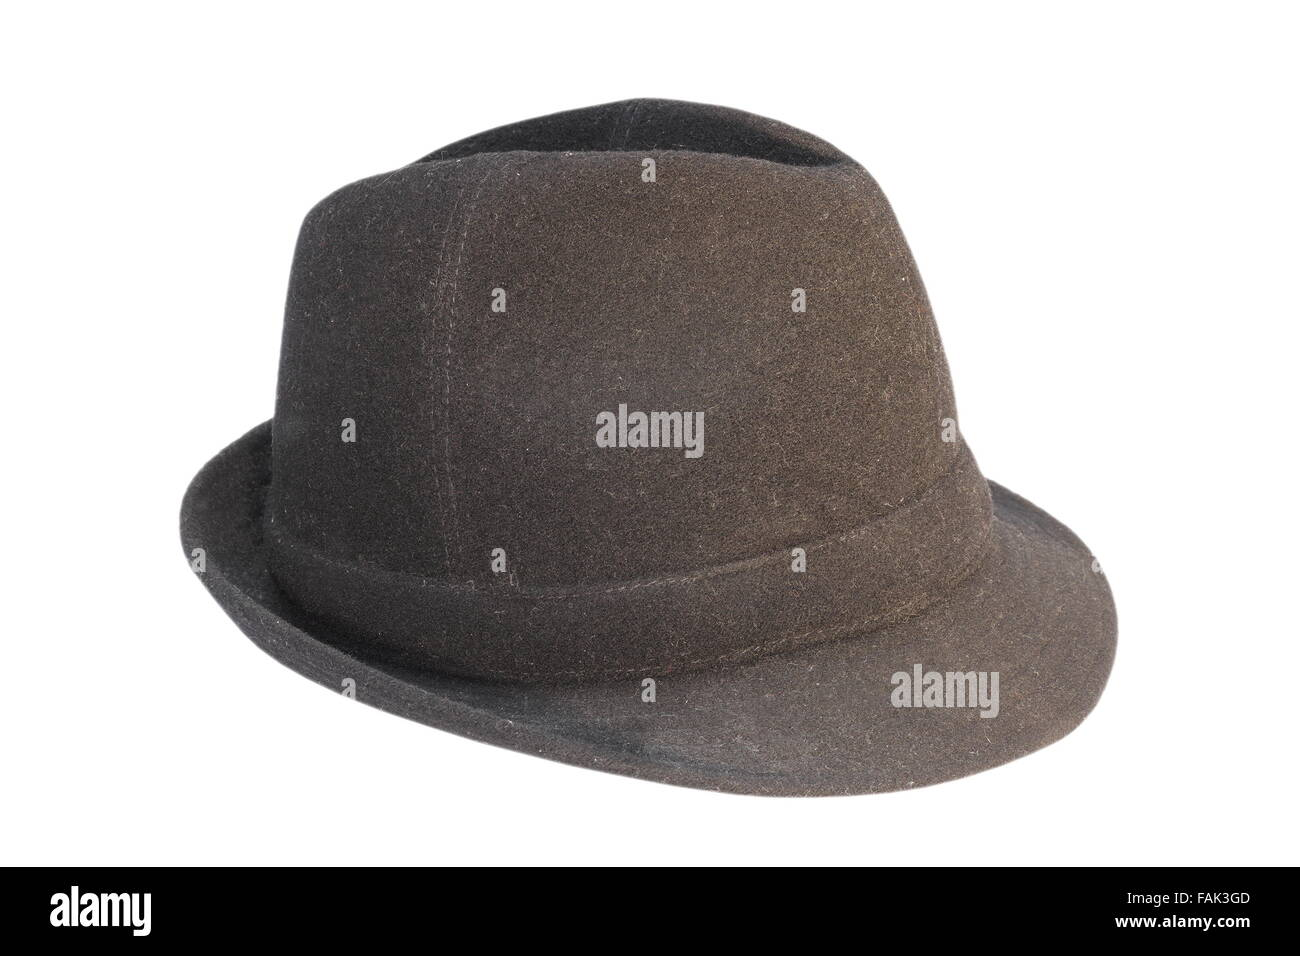 Old black hat isolated on white background stock photo alamy jpg 1300x956 Old  black hat 824de7a740ff